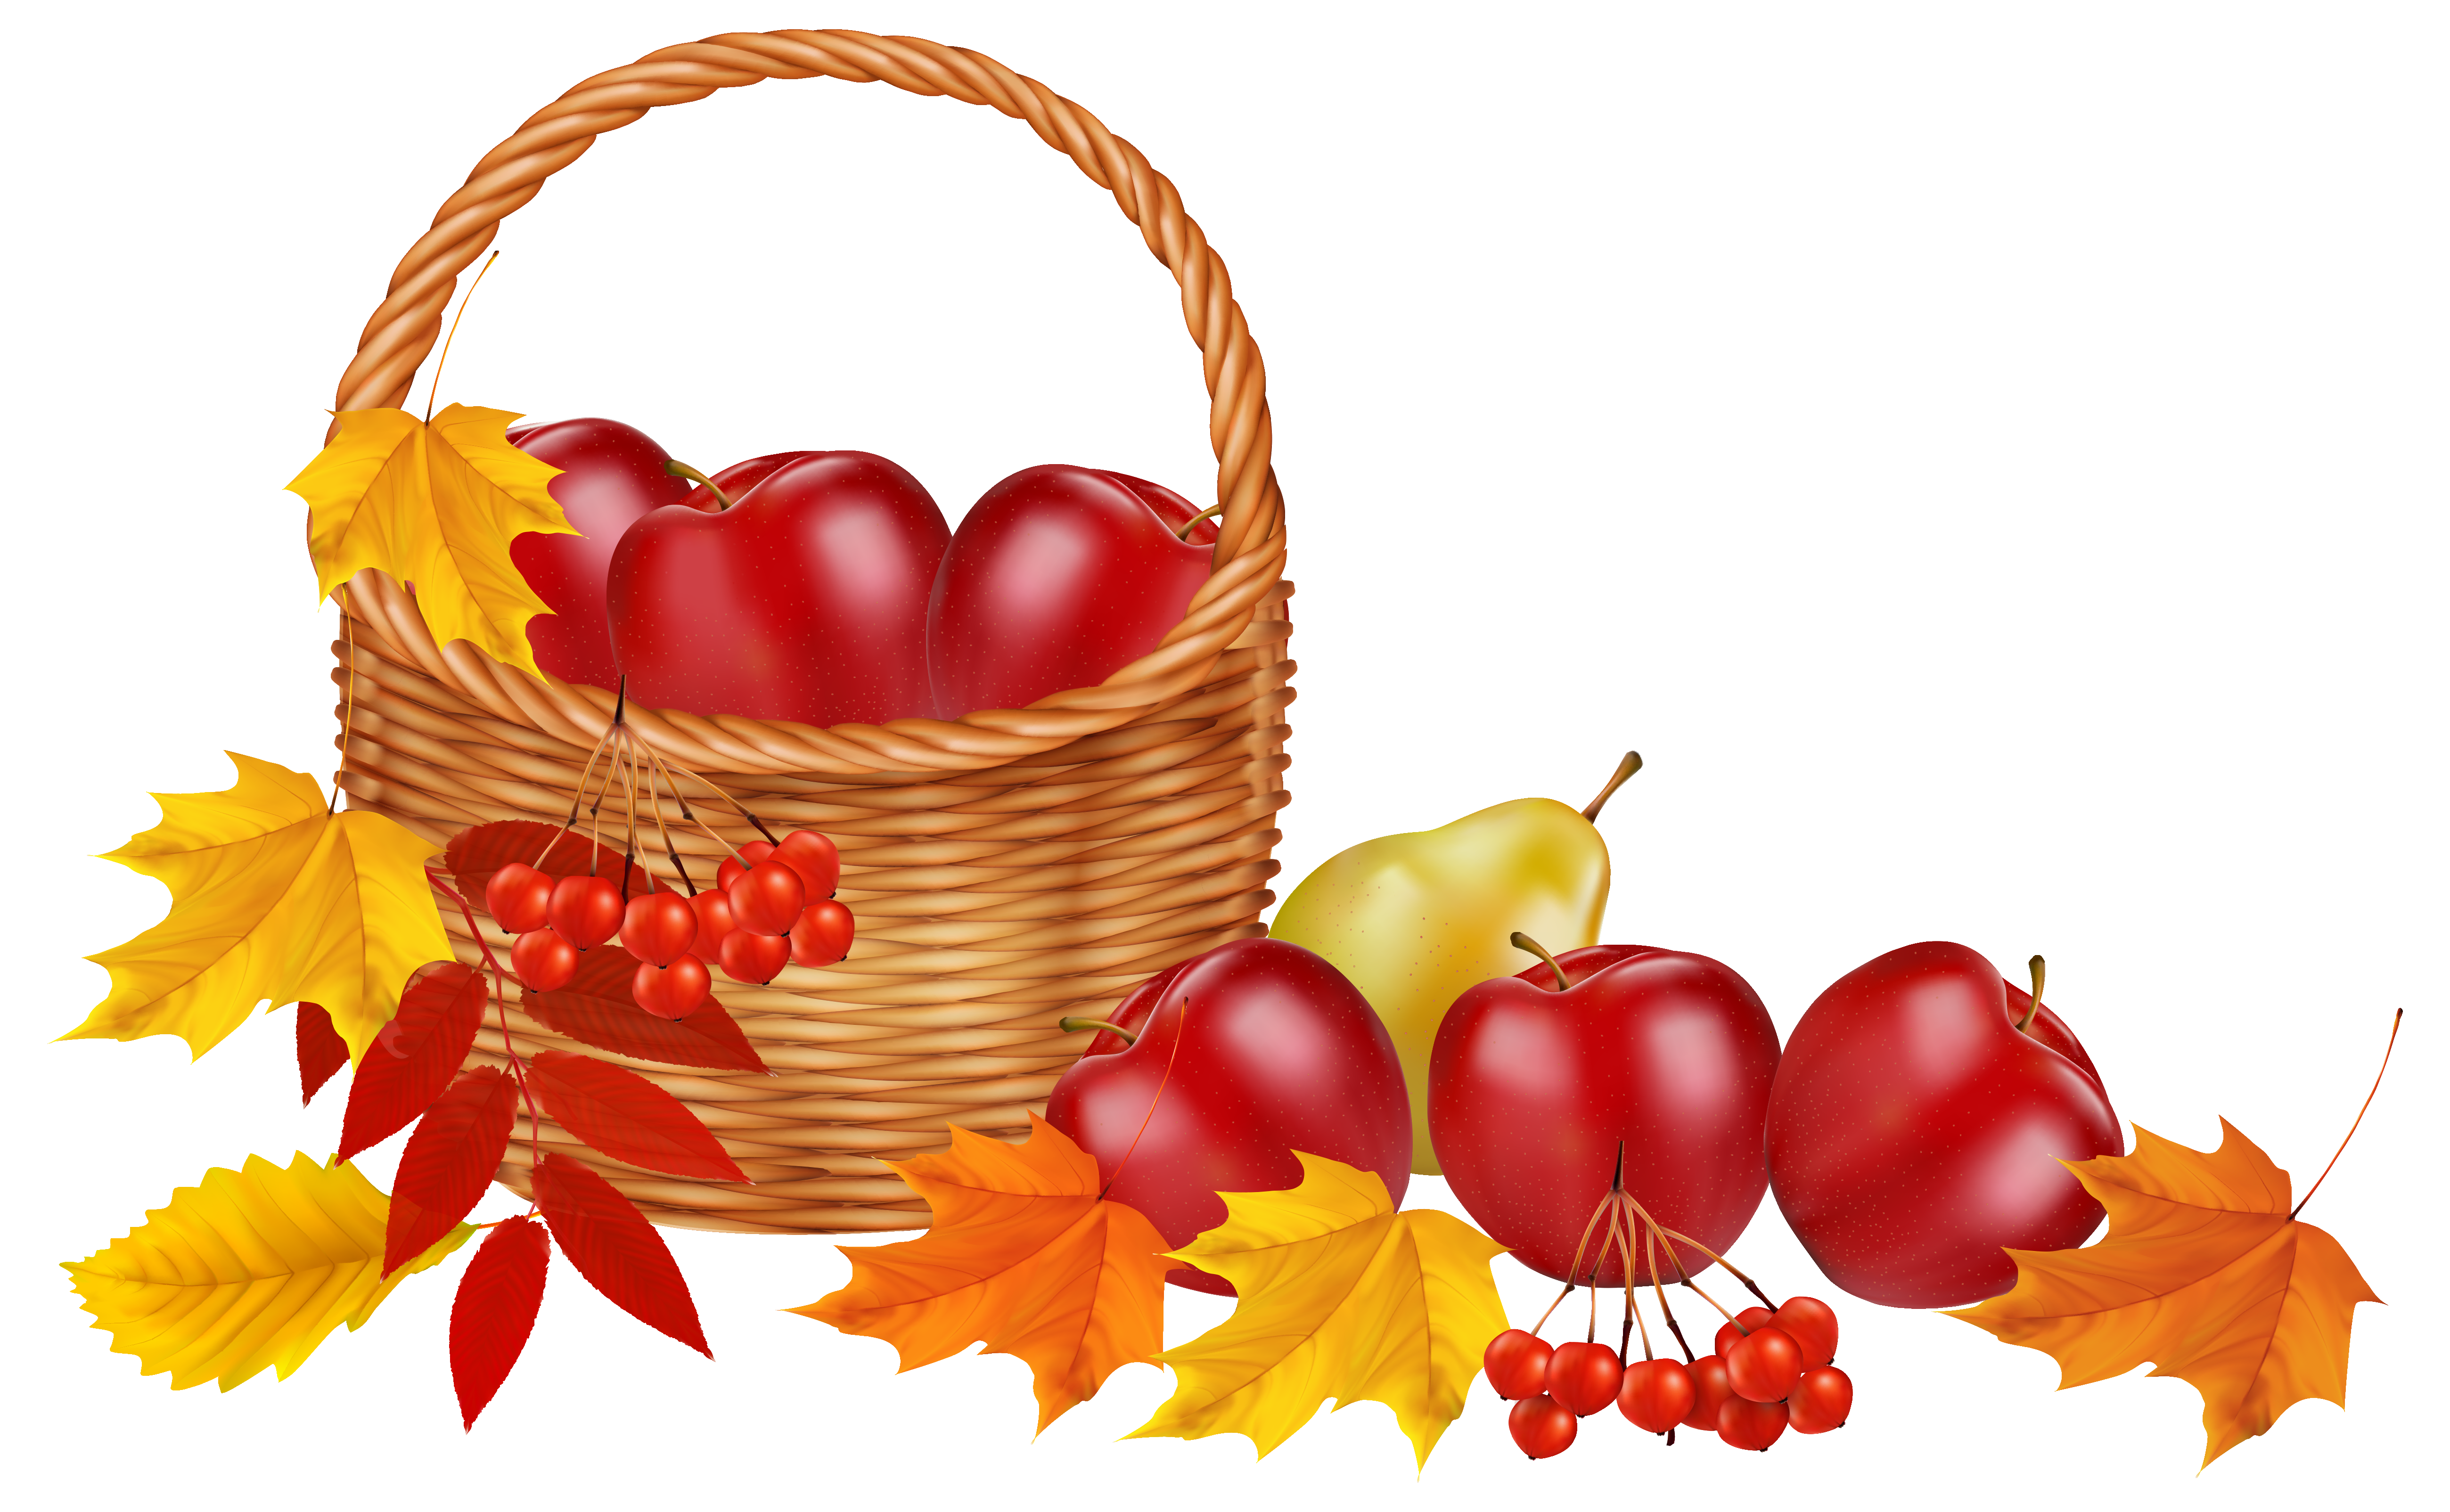 Thanksgiving raffle basket clipart clip royalty free library Basket With Fruits And Autumn Leaves Png Image Transparent Free ... clip royalty free library